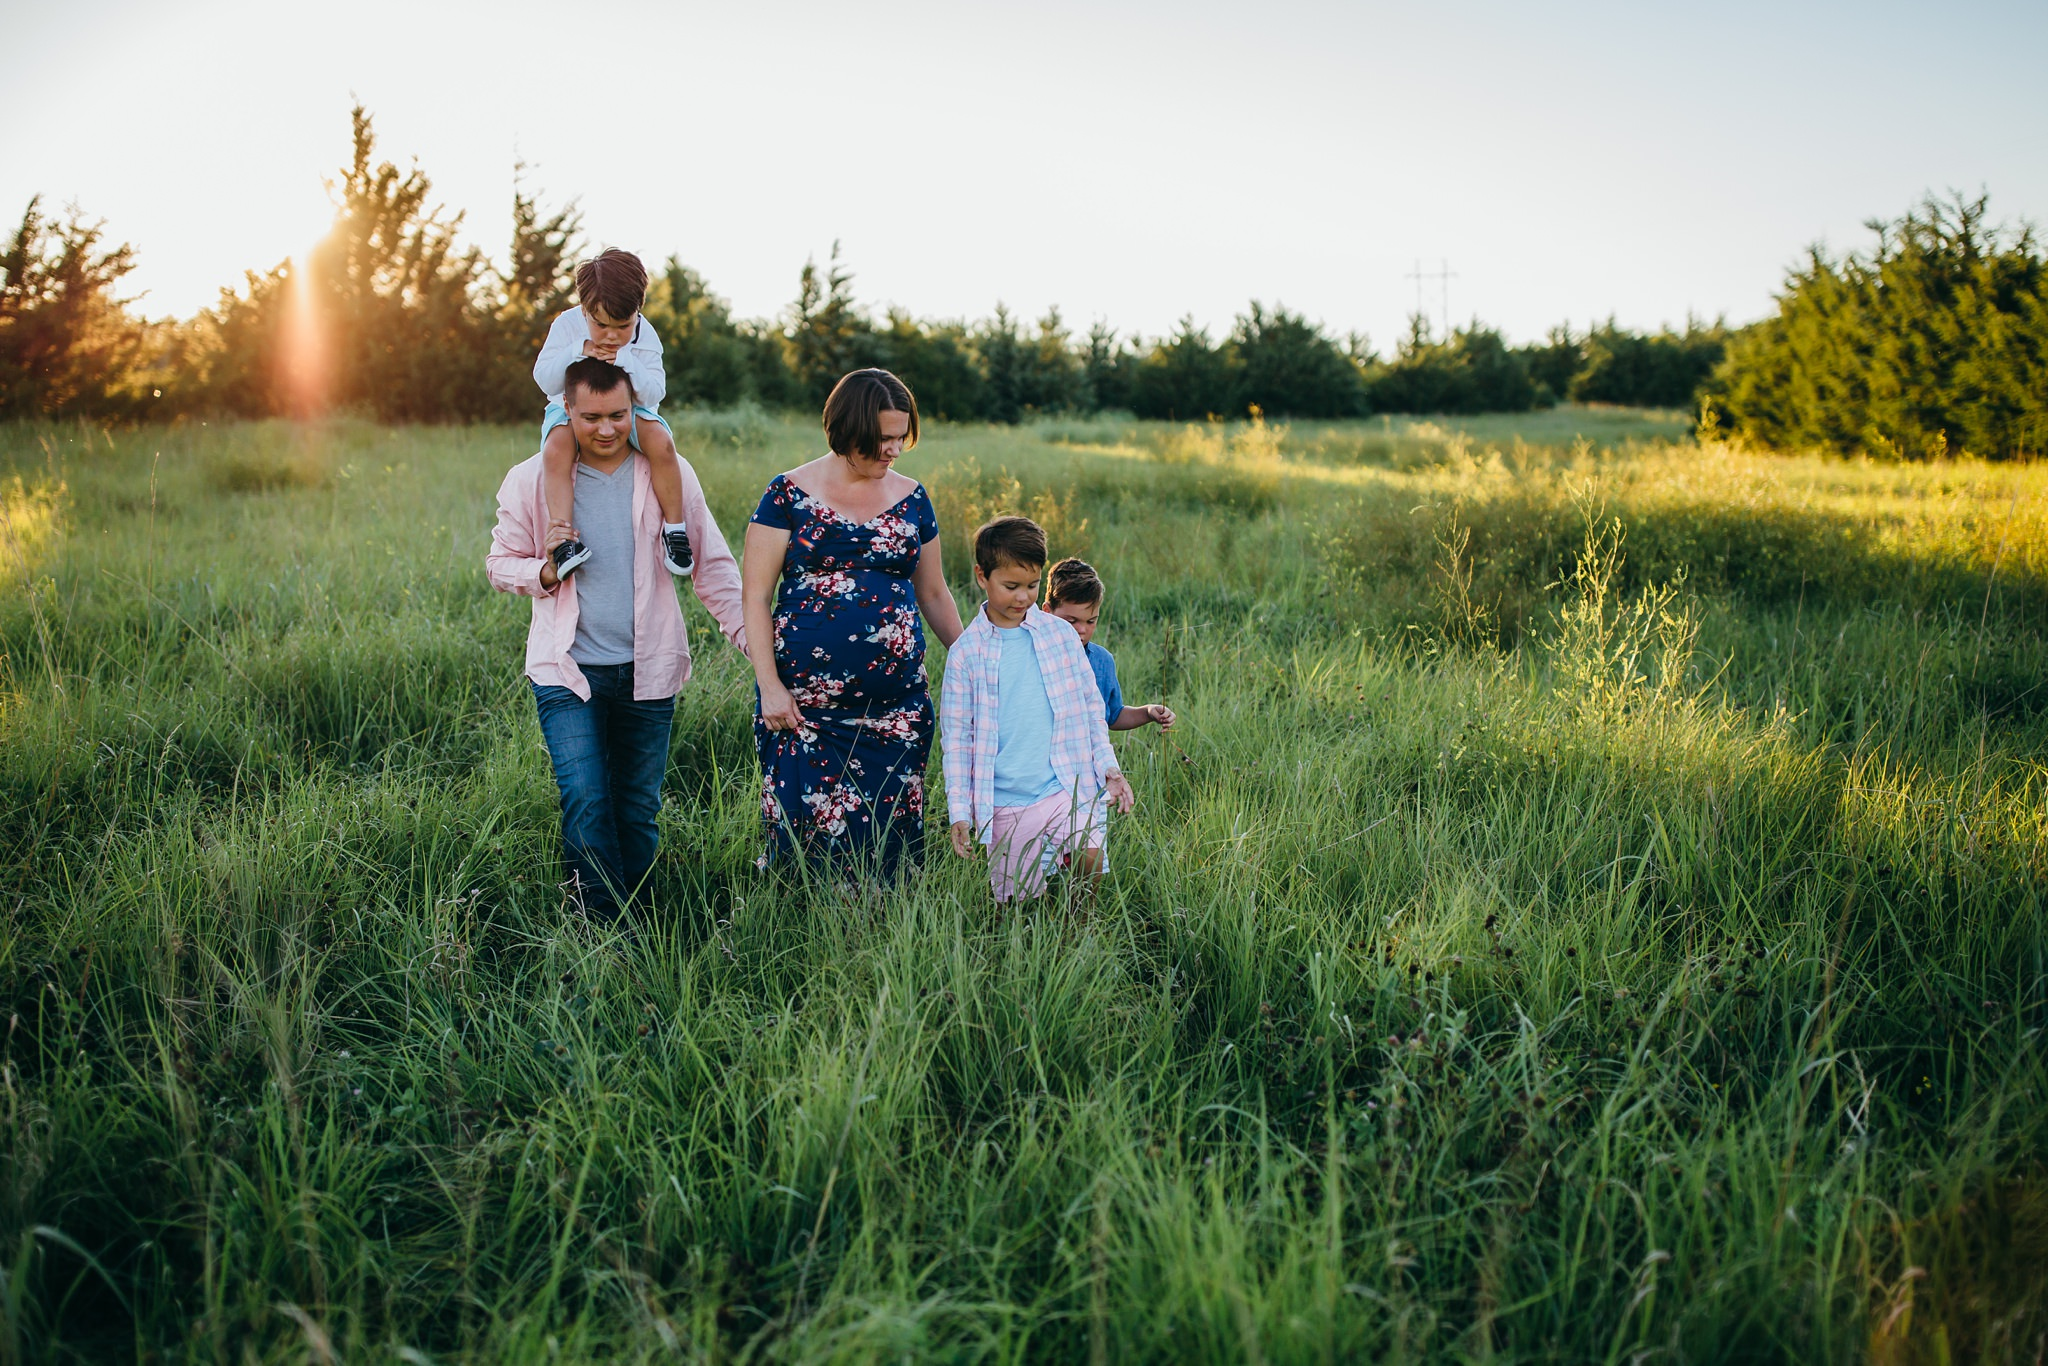 beck-family-whidbey-island-family-photographer_0039.jpg